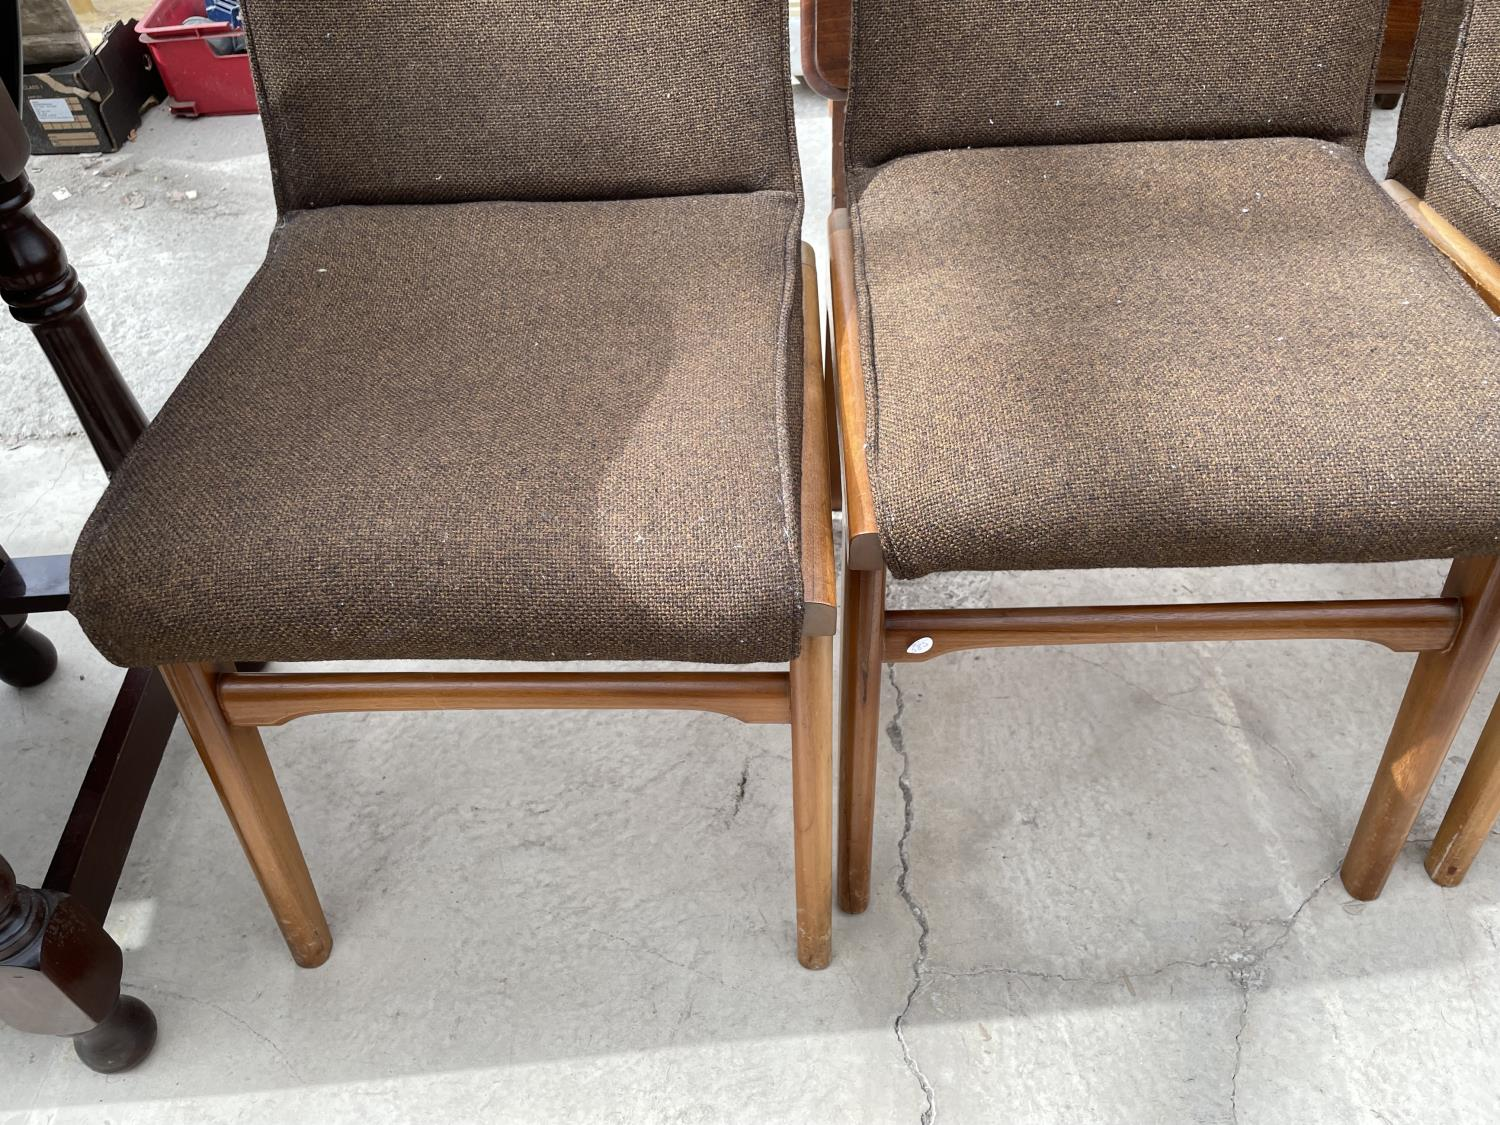 A SET OF SIX RETRO DINING CHAIRS WITH UPHOLSTERED BACKS AND SEATS - Image 3 of 8